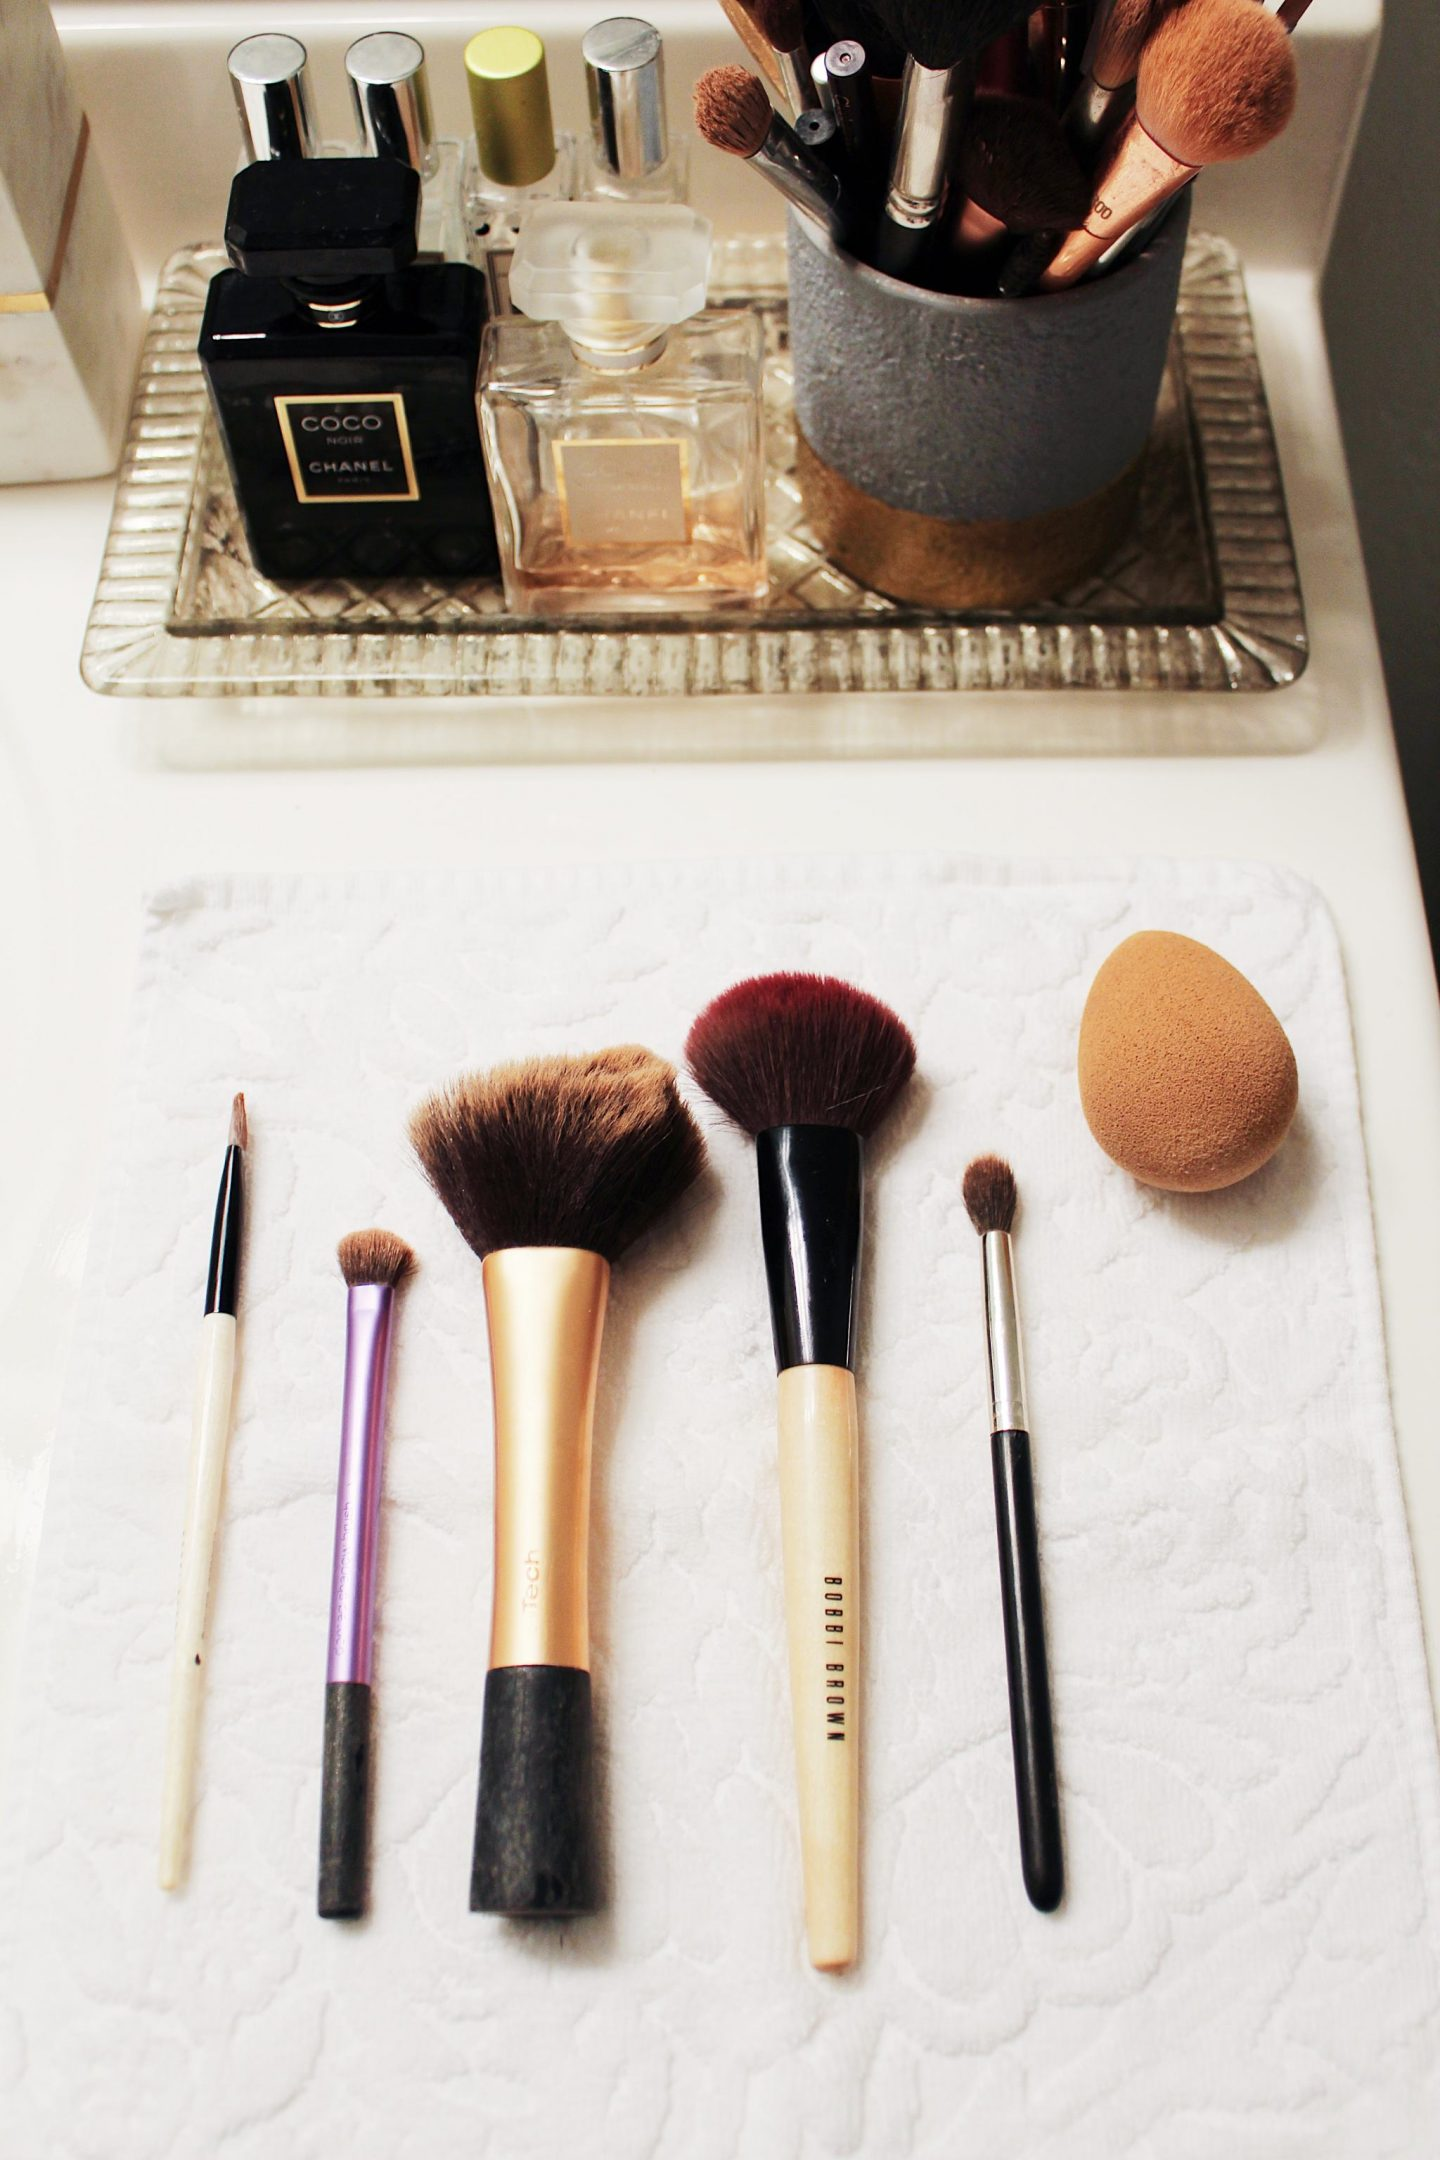 My Everyday Makeup Brushes & How I Clean Them - Ashley ...